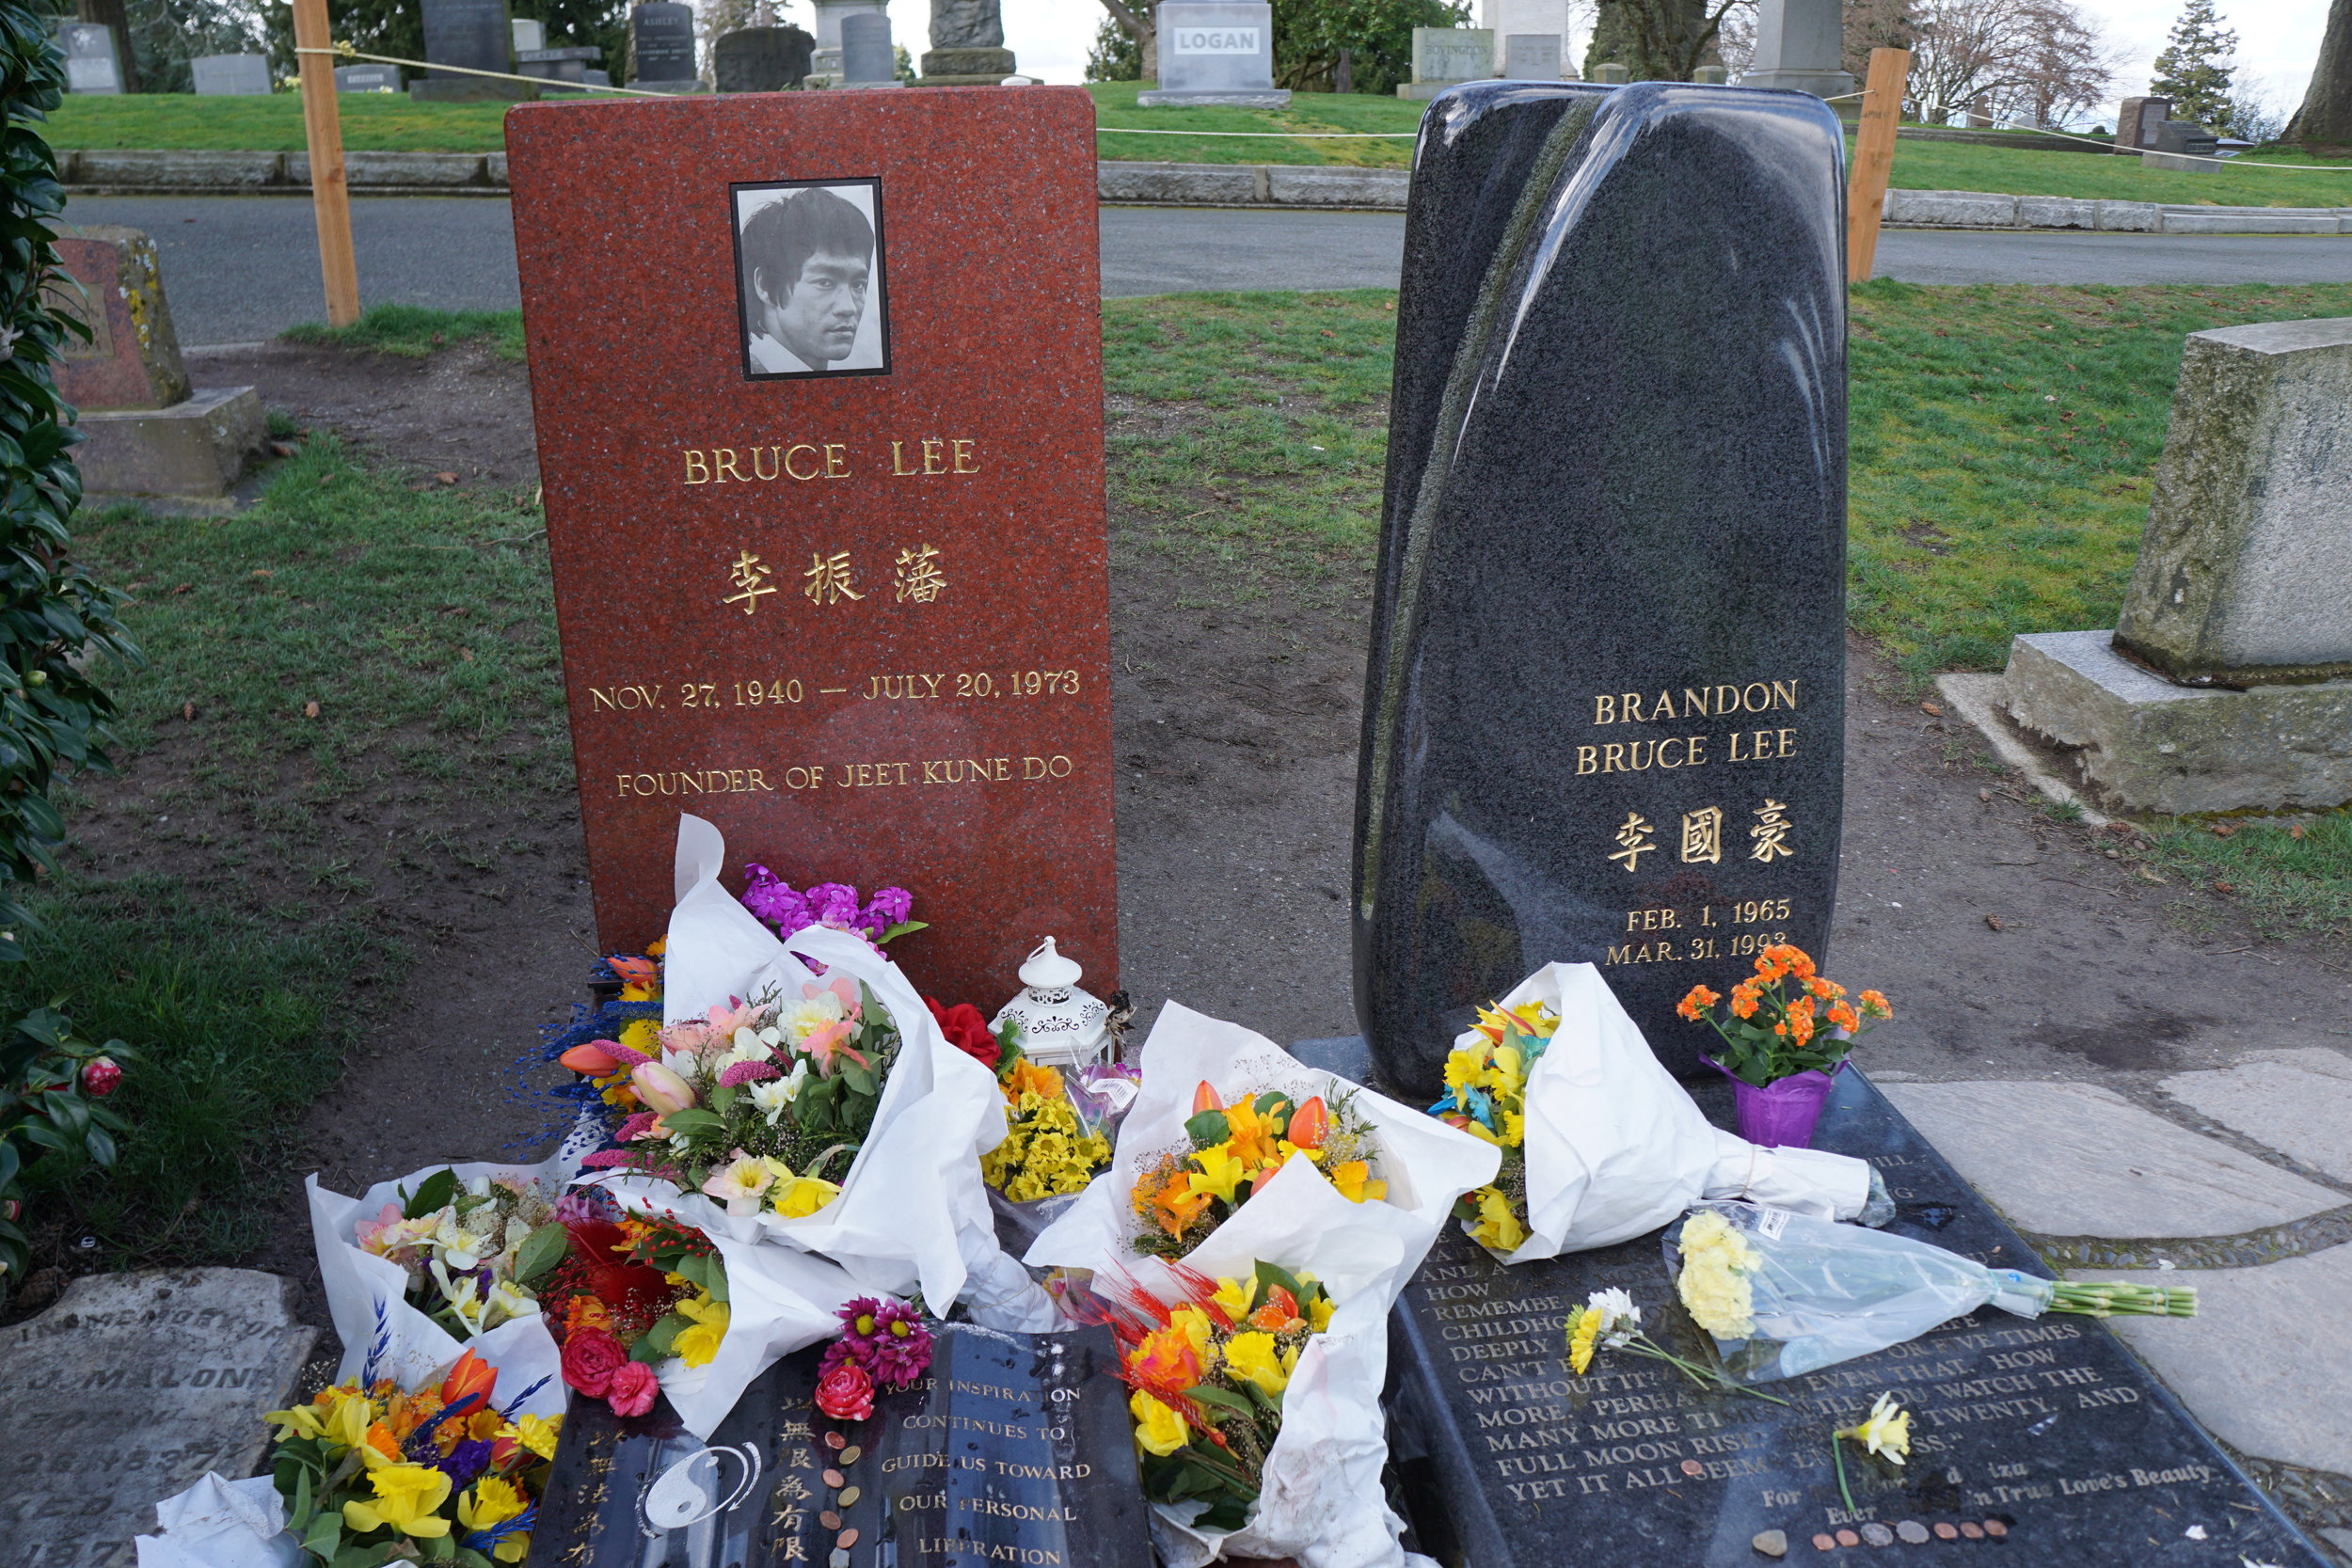 """""""Bruce lee Memorial""""  Photo taken by Calvin Harjono - The famous martial artist, Bruce Lee was buried just North of Seattle at this memorial site."""